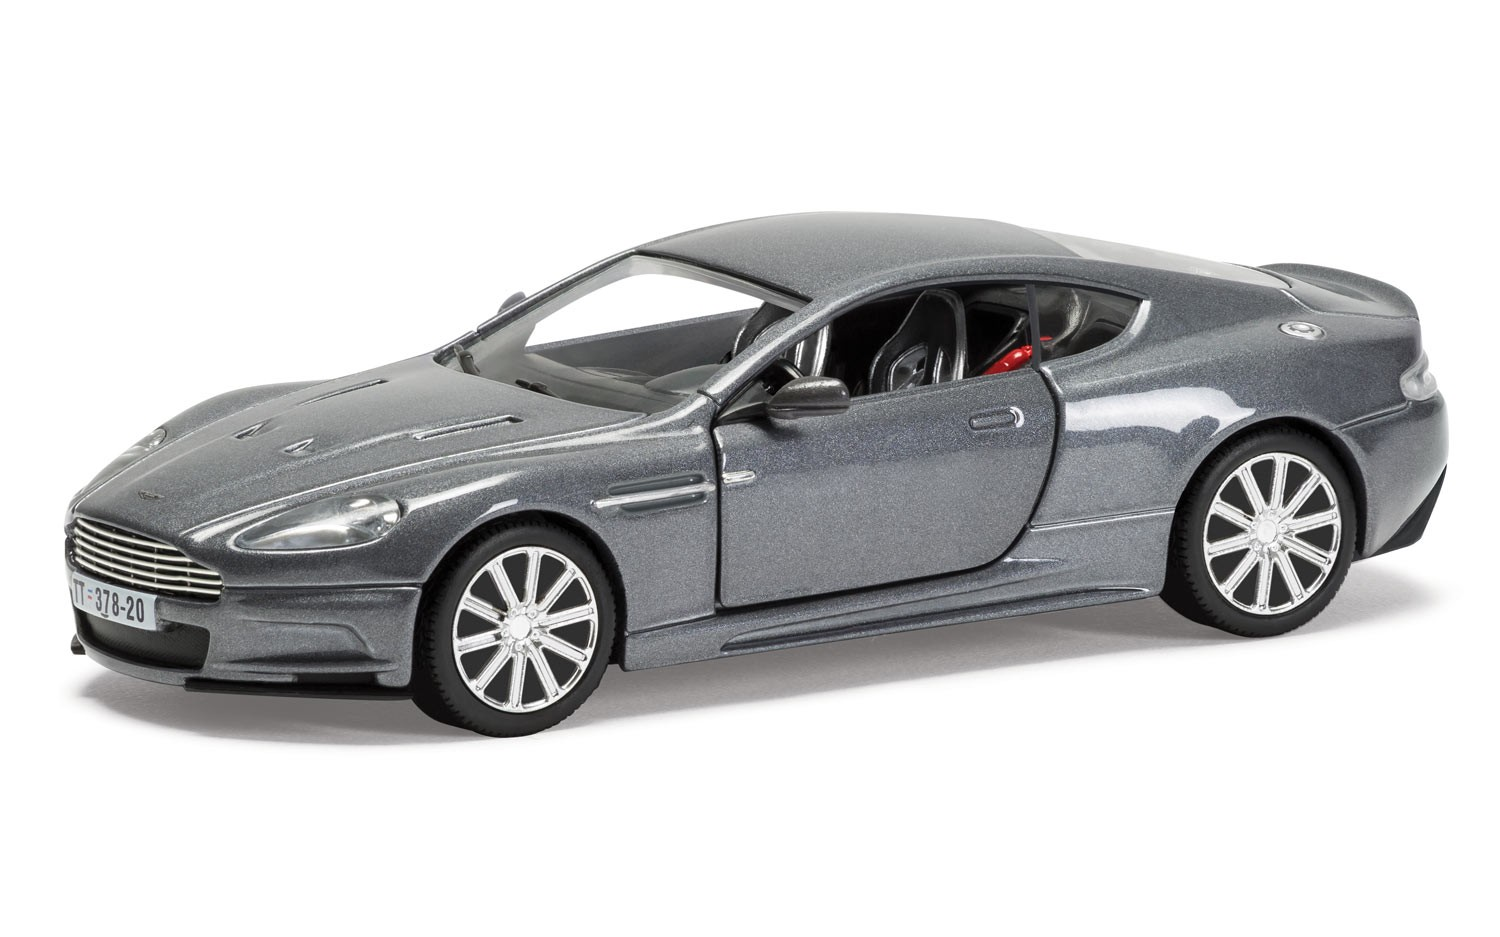 James Bond Aston Martin DBS Casino Royale